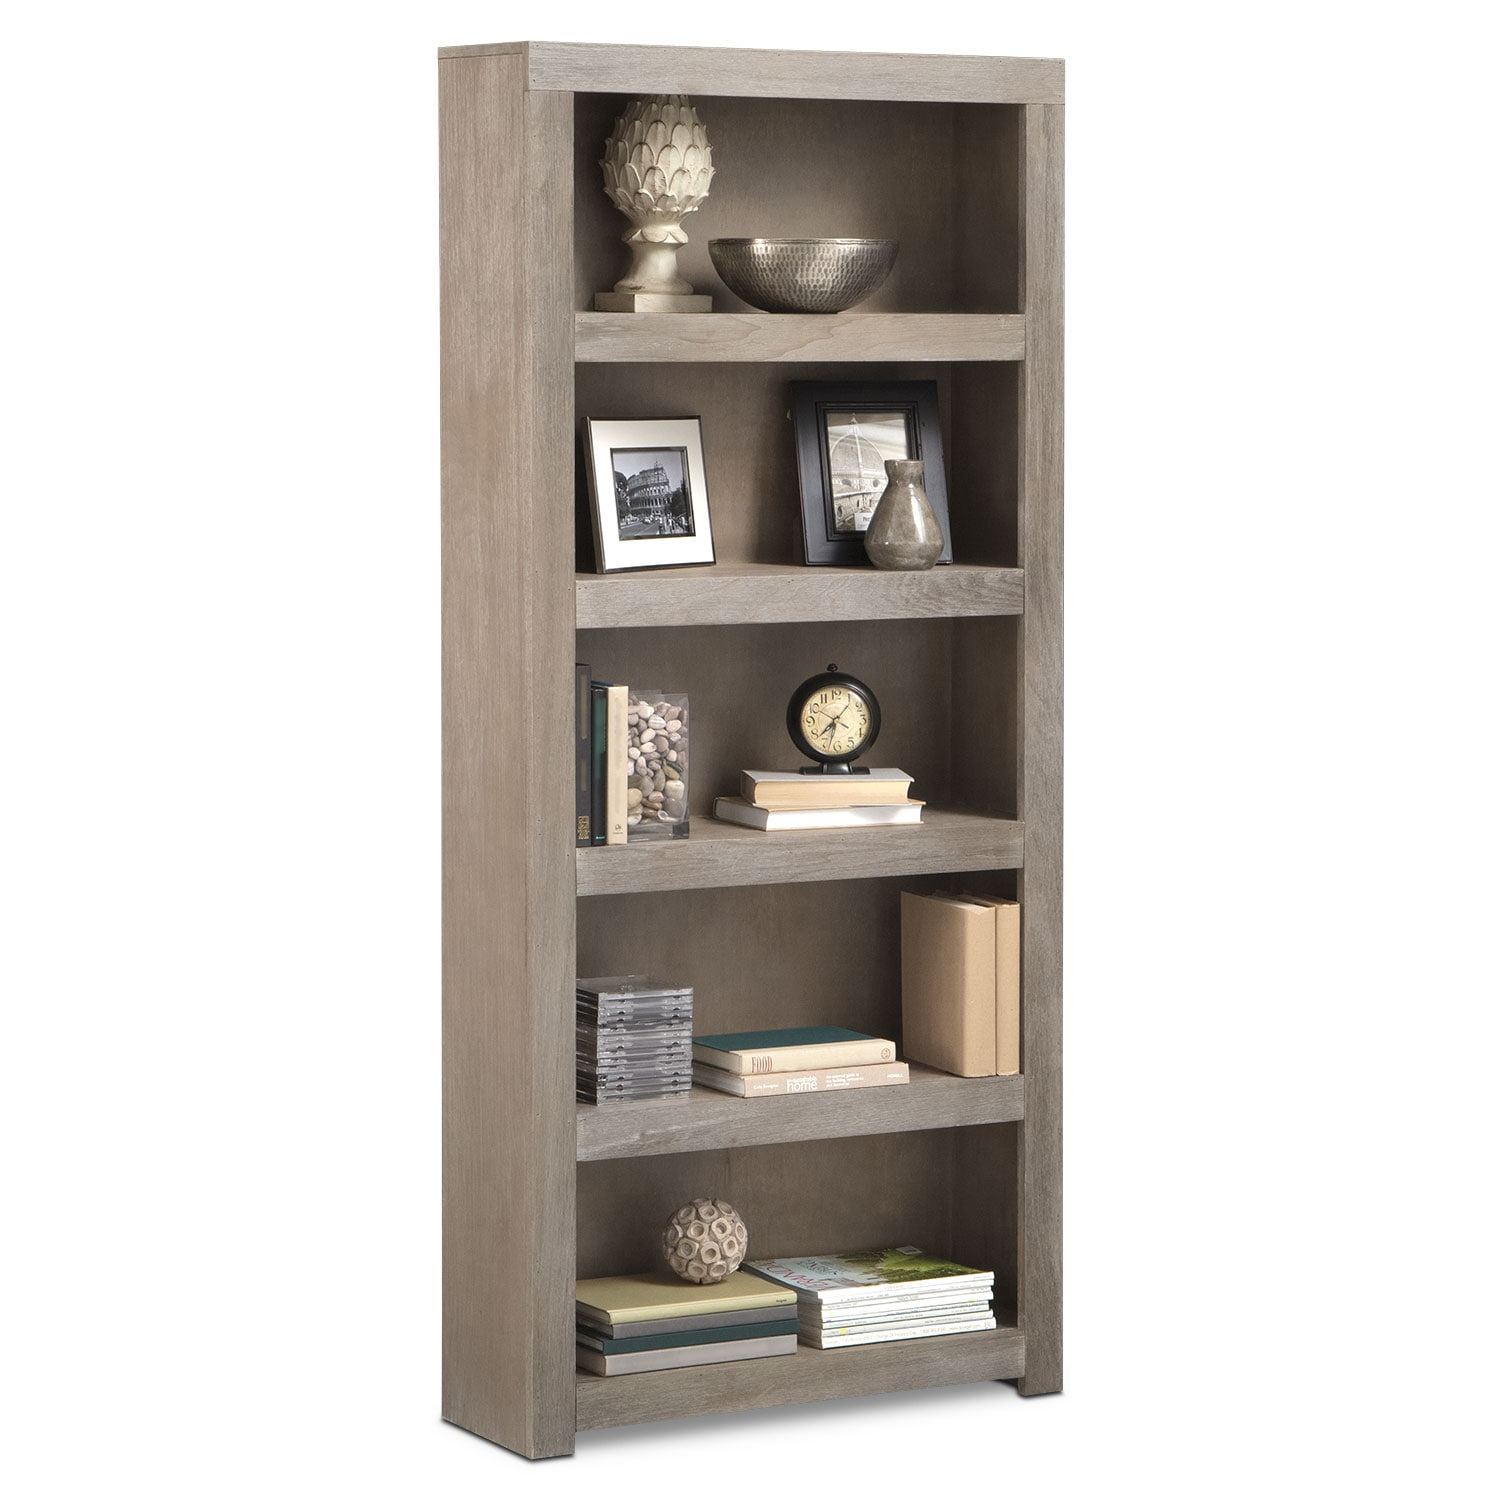 "Home Office Furniture - Bricklin 72"" Bookcase - Driftwood"